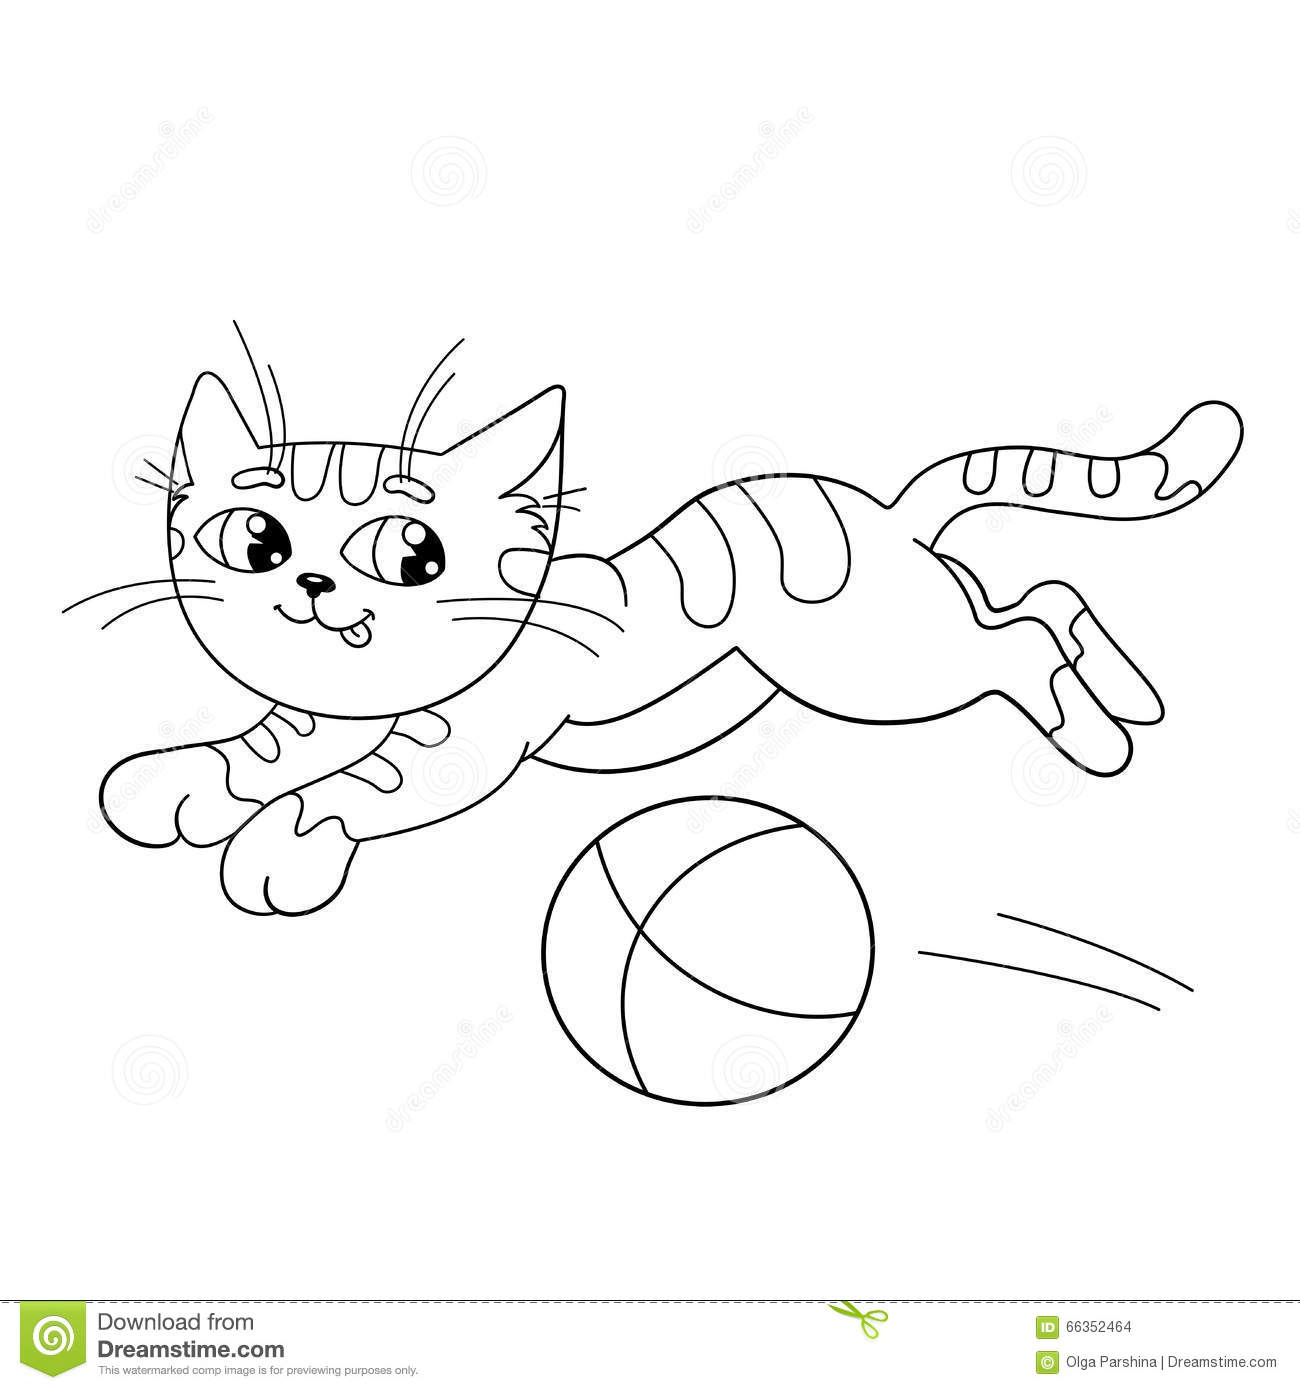 Coloring Page Outline Of A Fluffy Cat Playing With Ball